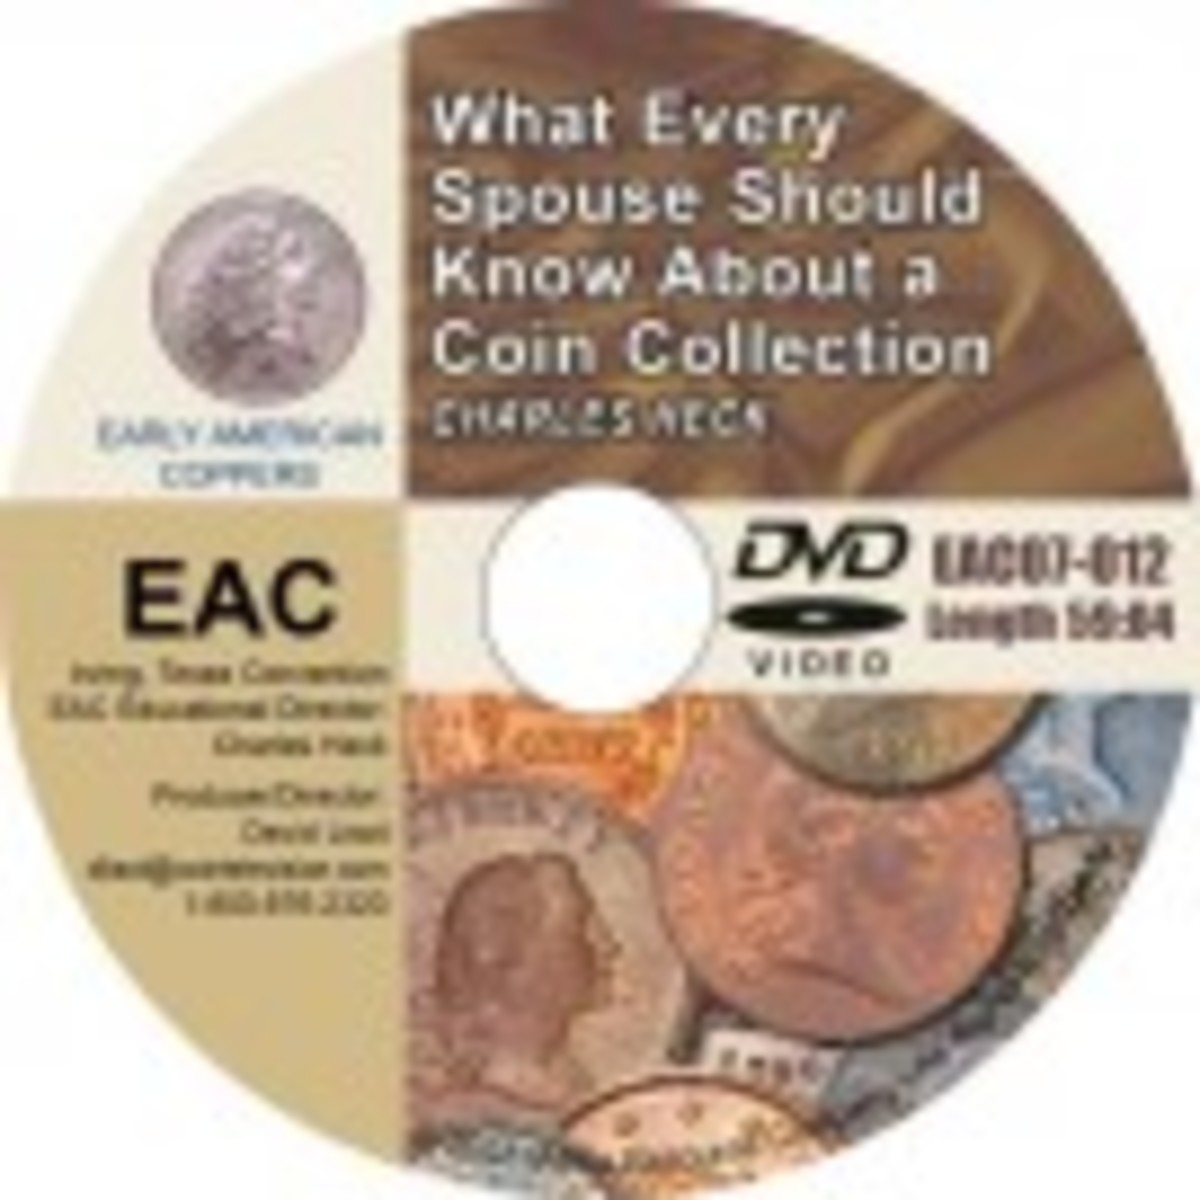 What Every Spouse Should Know About a Coin Collection